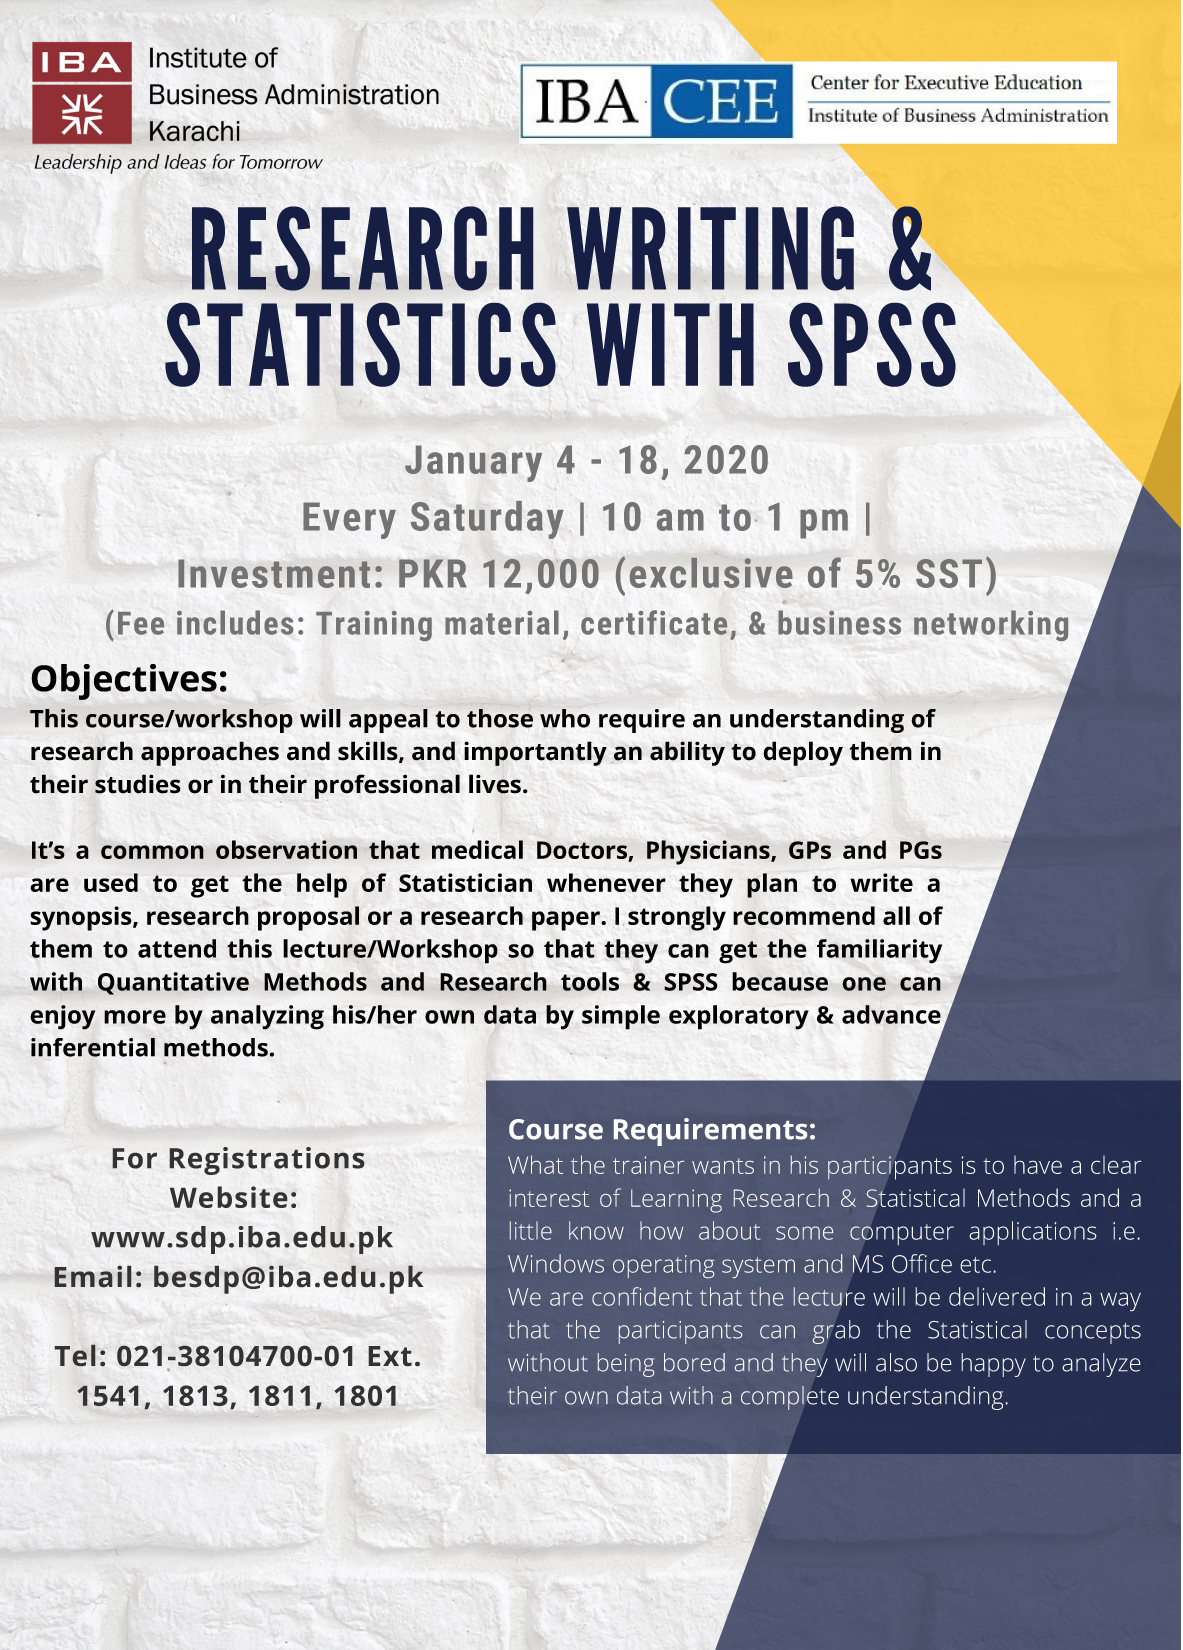 Research Writing & Statistics with SPSS